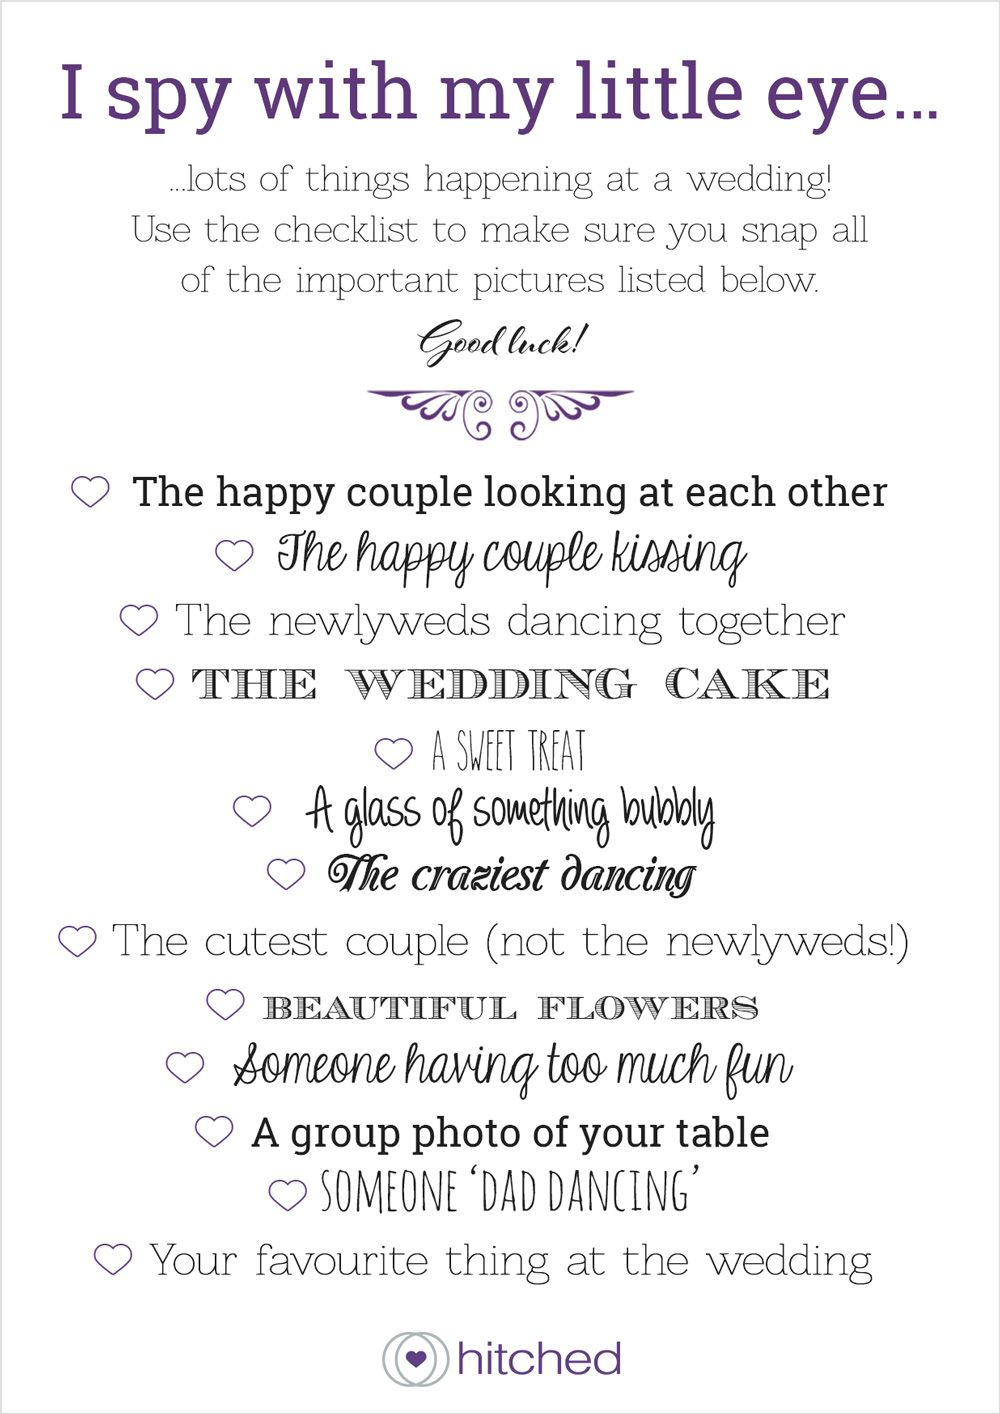 Wedding Table Games: The Best Ice Breakers | Weddings, Wedding and ...